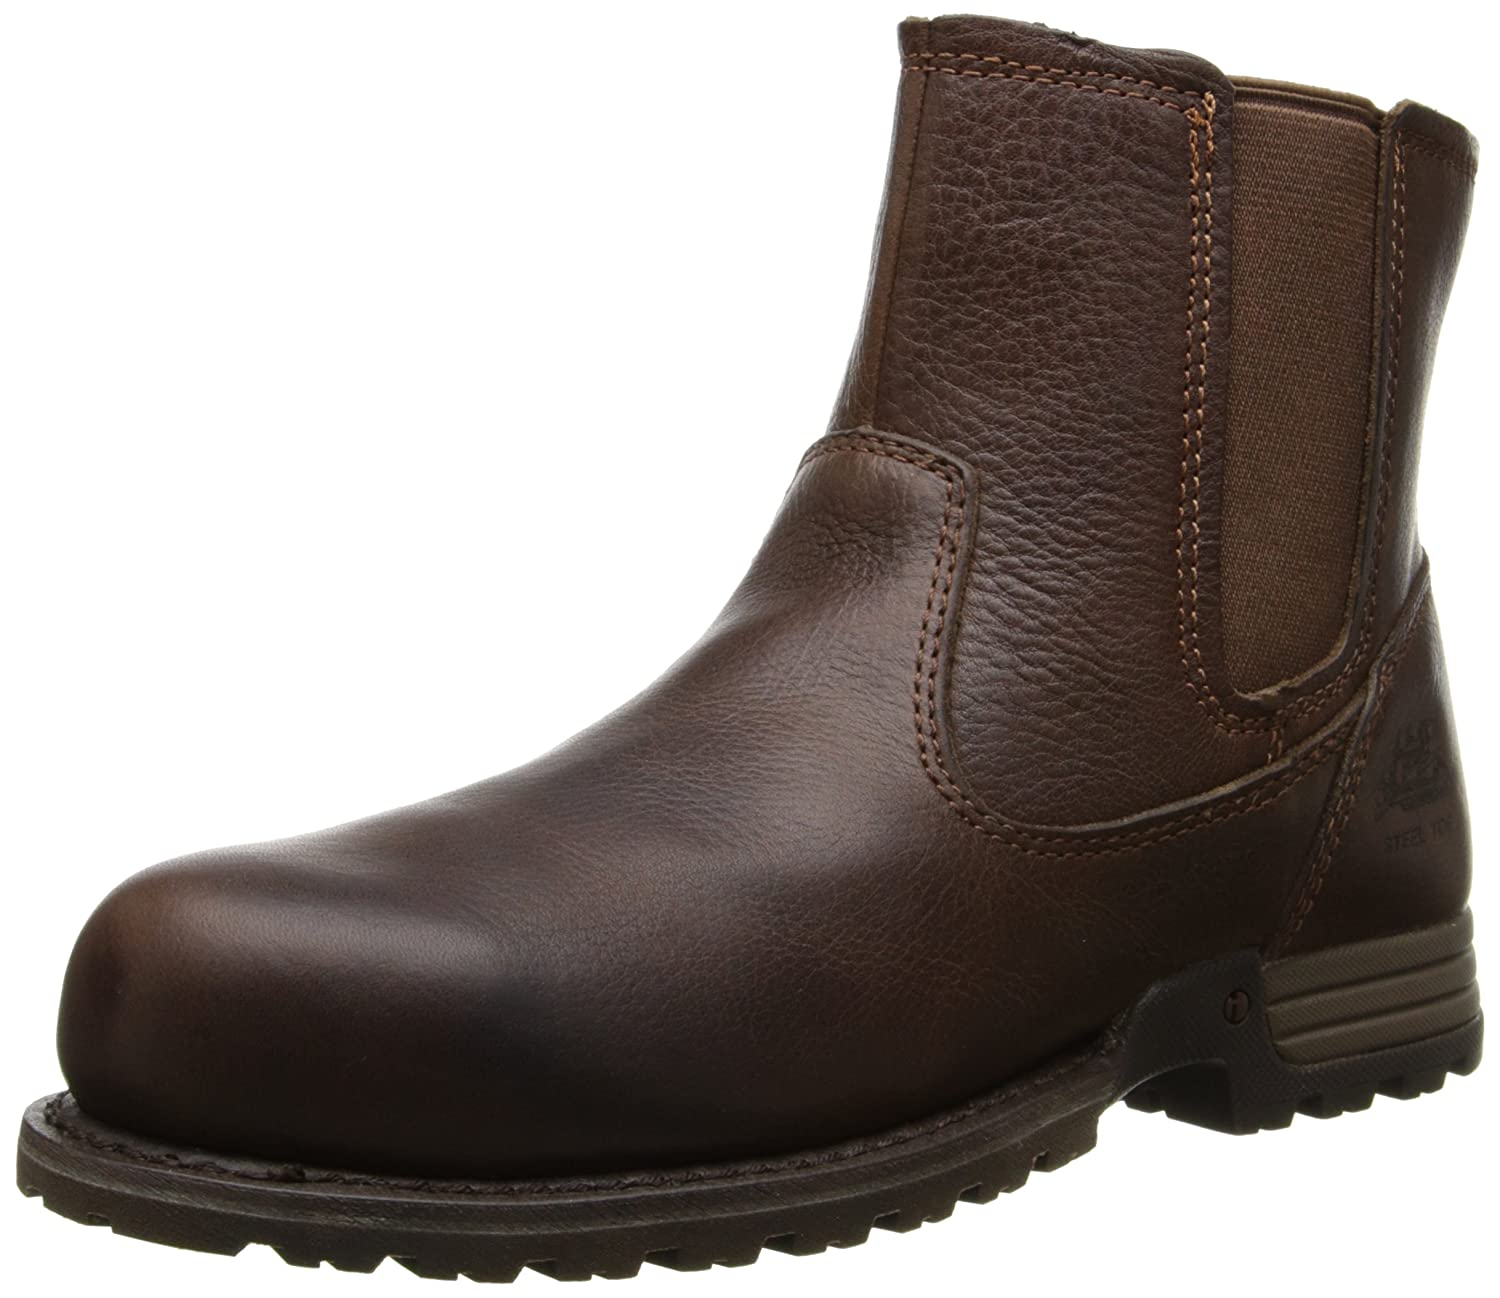 52963098264 Caterpillar Women's Freedom Pull on Steel Toe Work Leather Boot